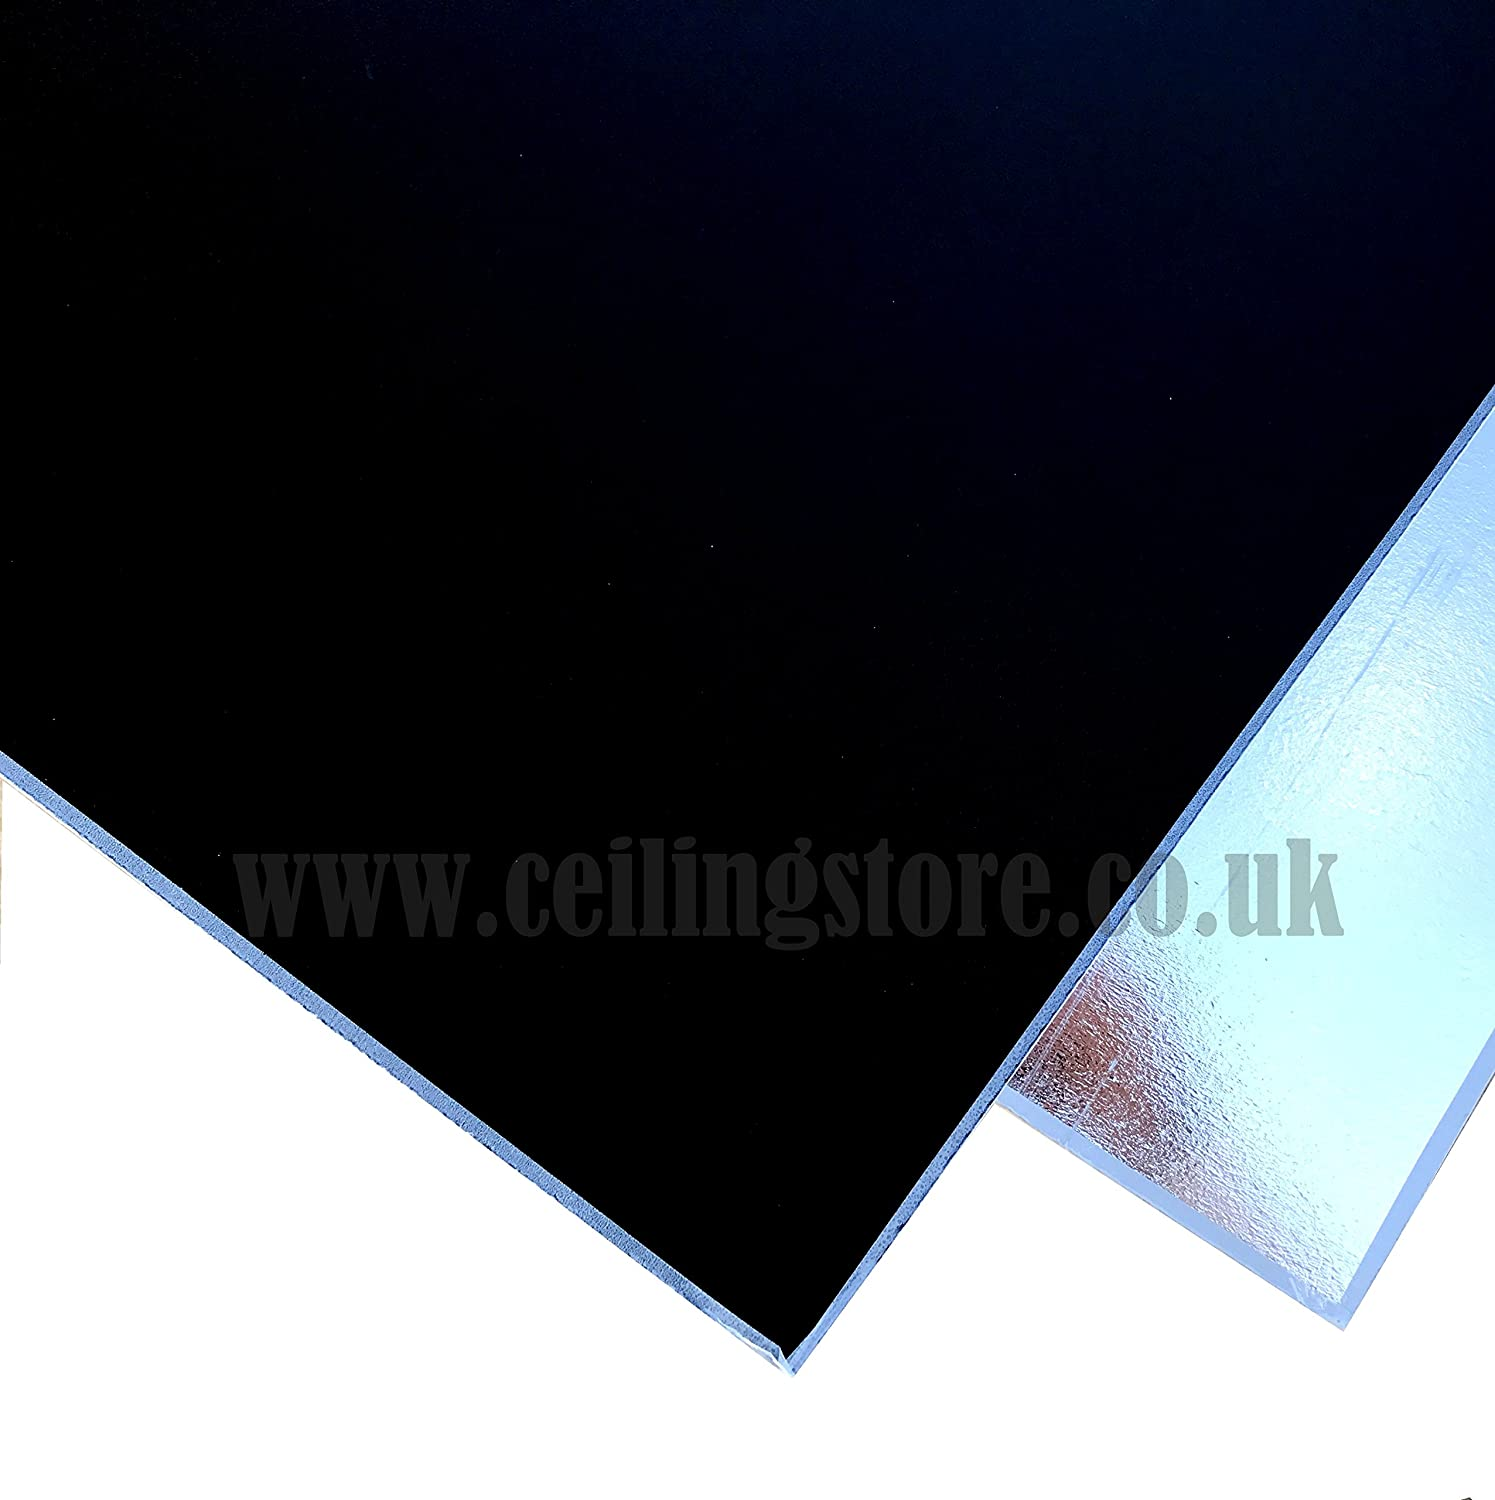 BLACK Suspended Vinyl PVC Gypsum Laminated Tiles - Easy Clean & Wipe Able 595mm x 595mm CEILING EXPERT